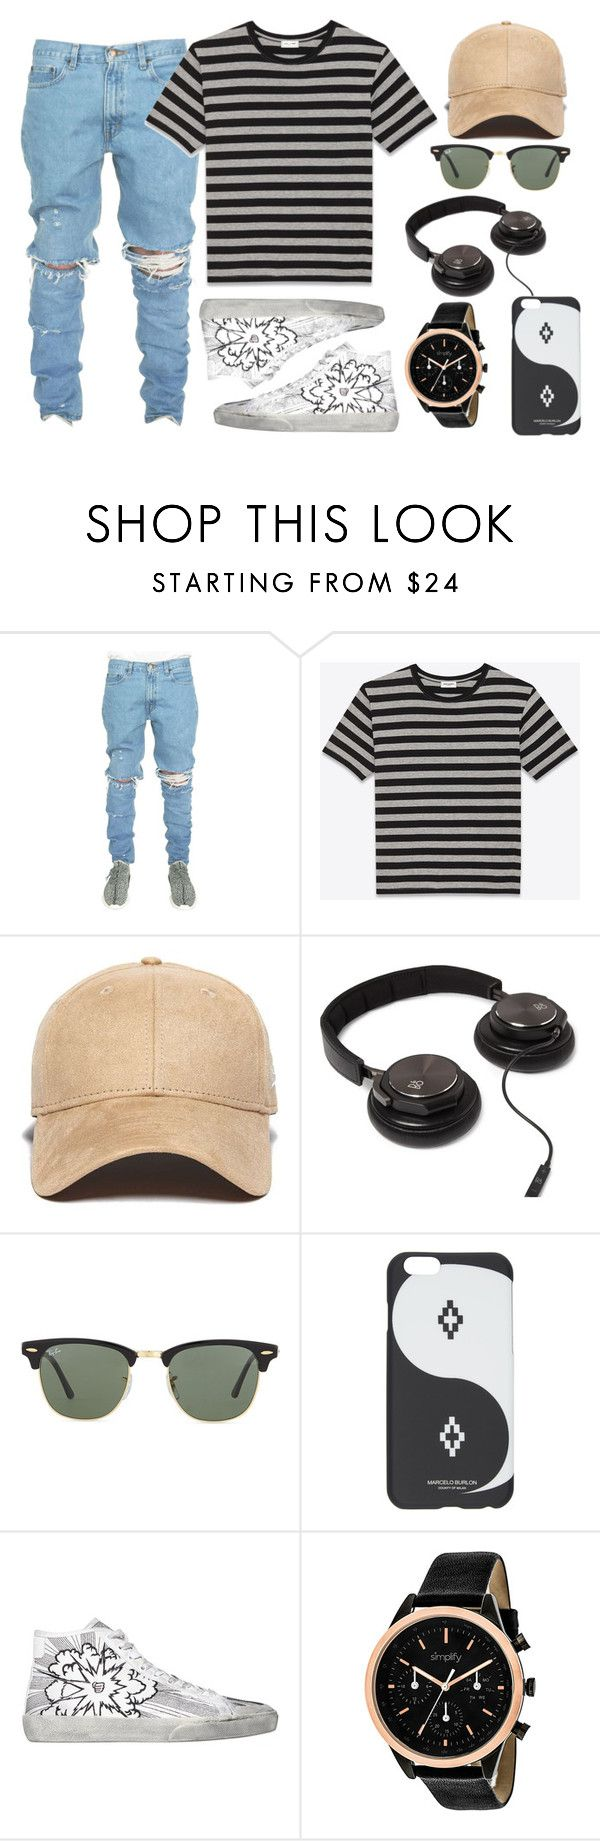 """outfit#86"" by alifia-fae on Polyvore featuring Yves Saint Laurent, New Era, Ray-Ban, County Of Milan, Simplify, men's fashion and menswear"